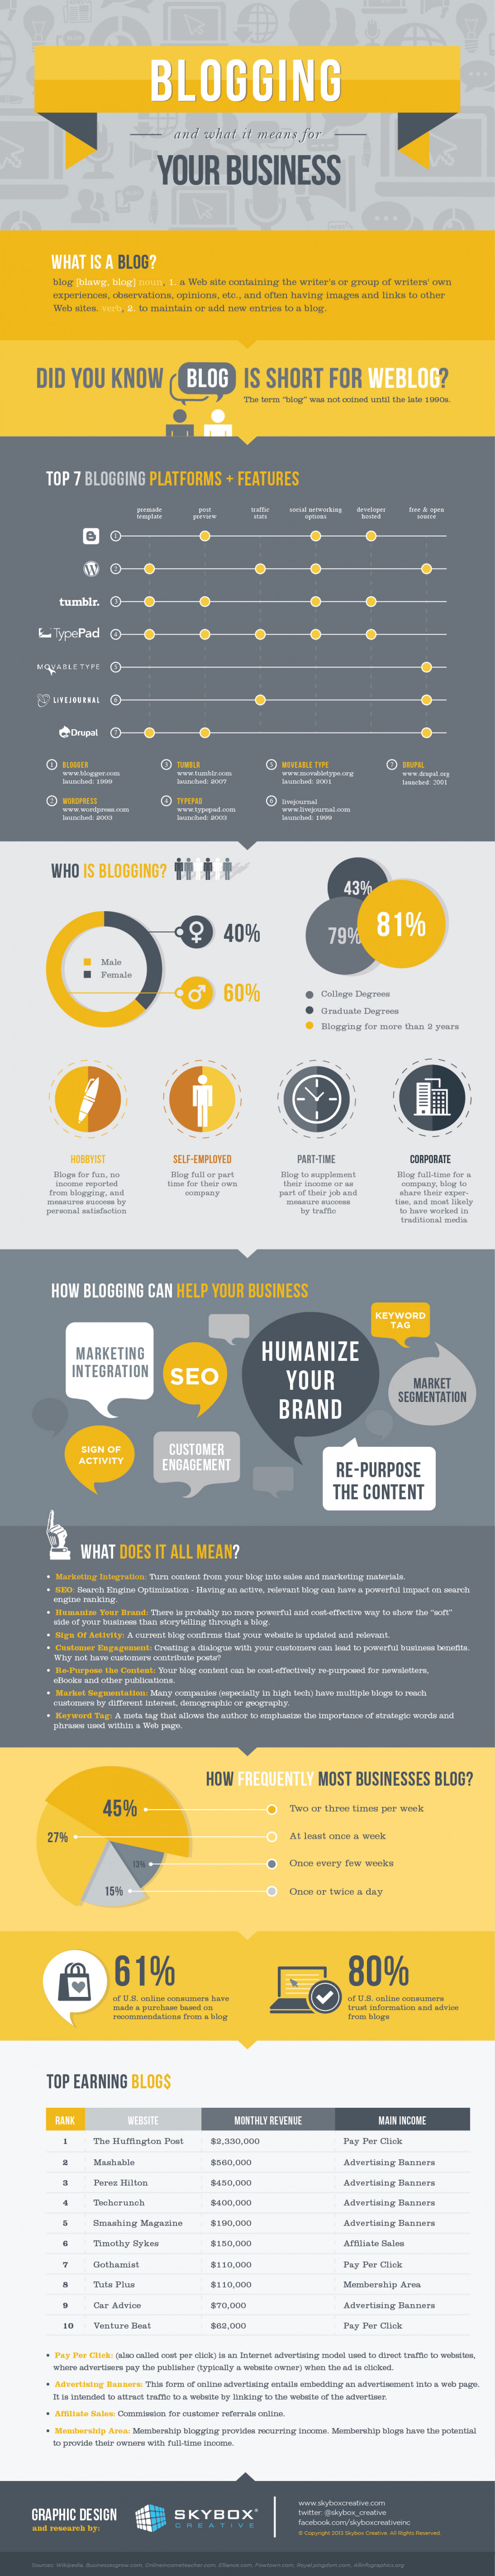 Blogging for Business, Blogging for Profit Infographic